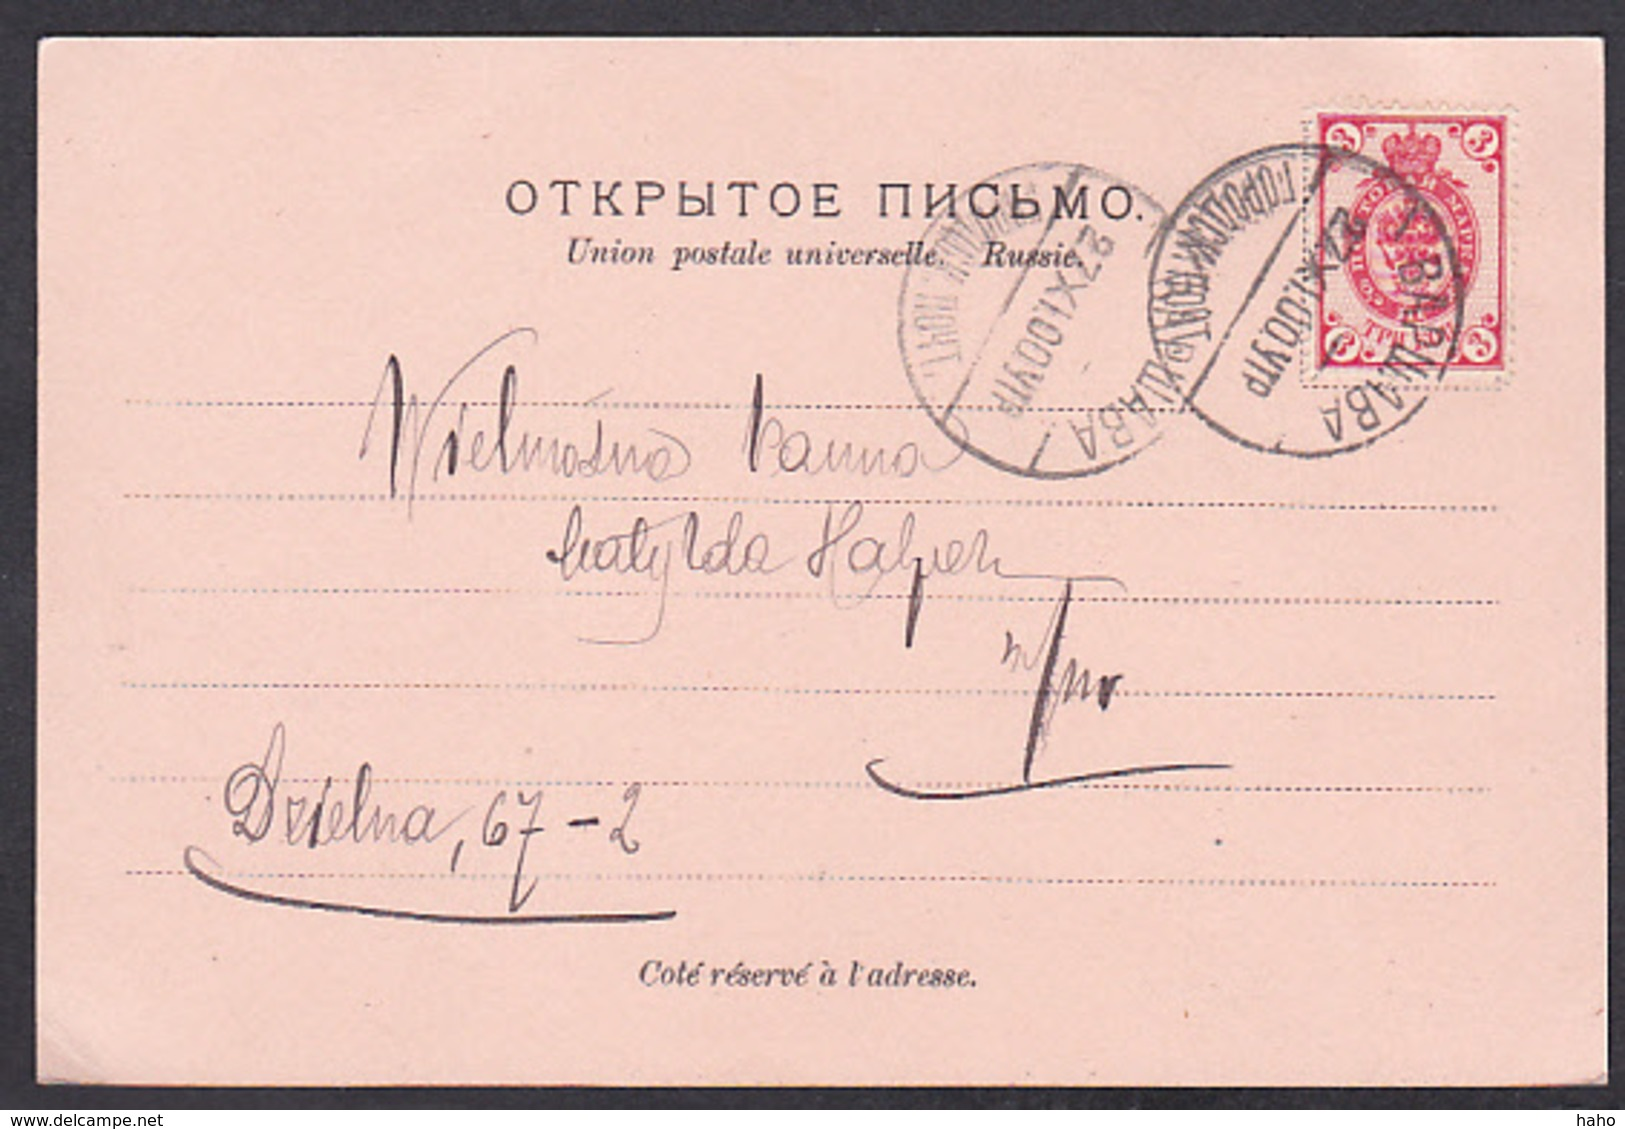 Poland. Postcard Exhibition In Warsaw 1900 - Pologne